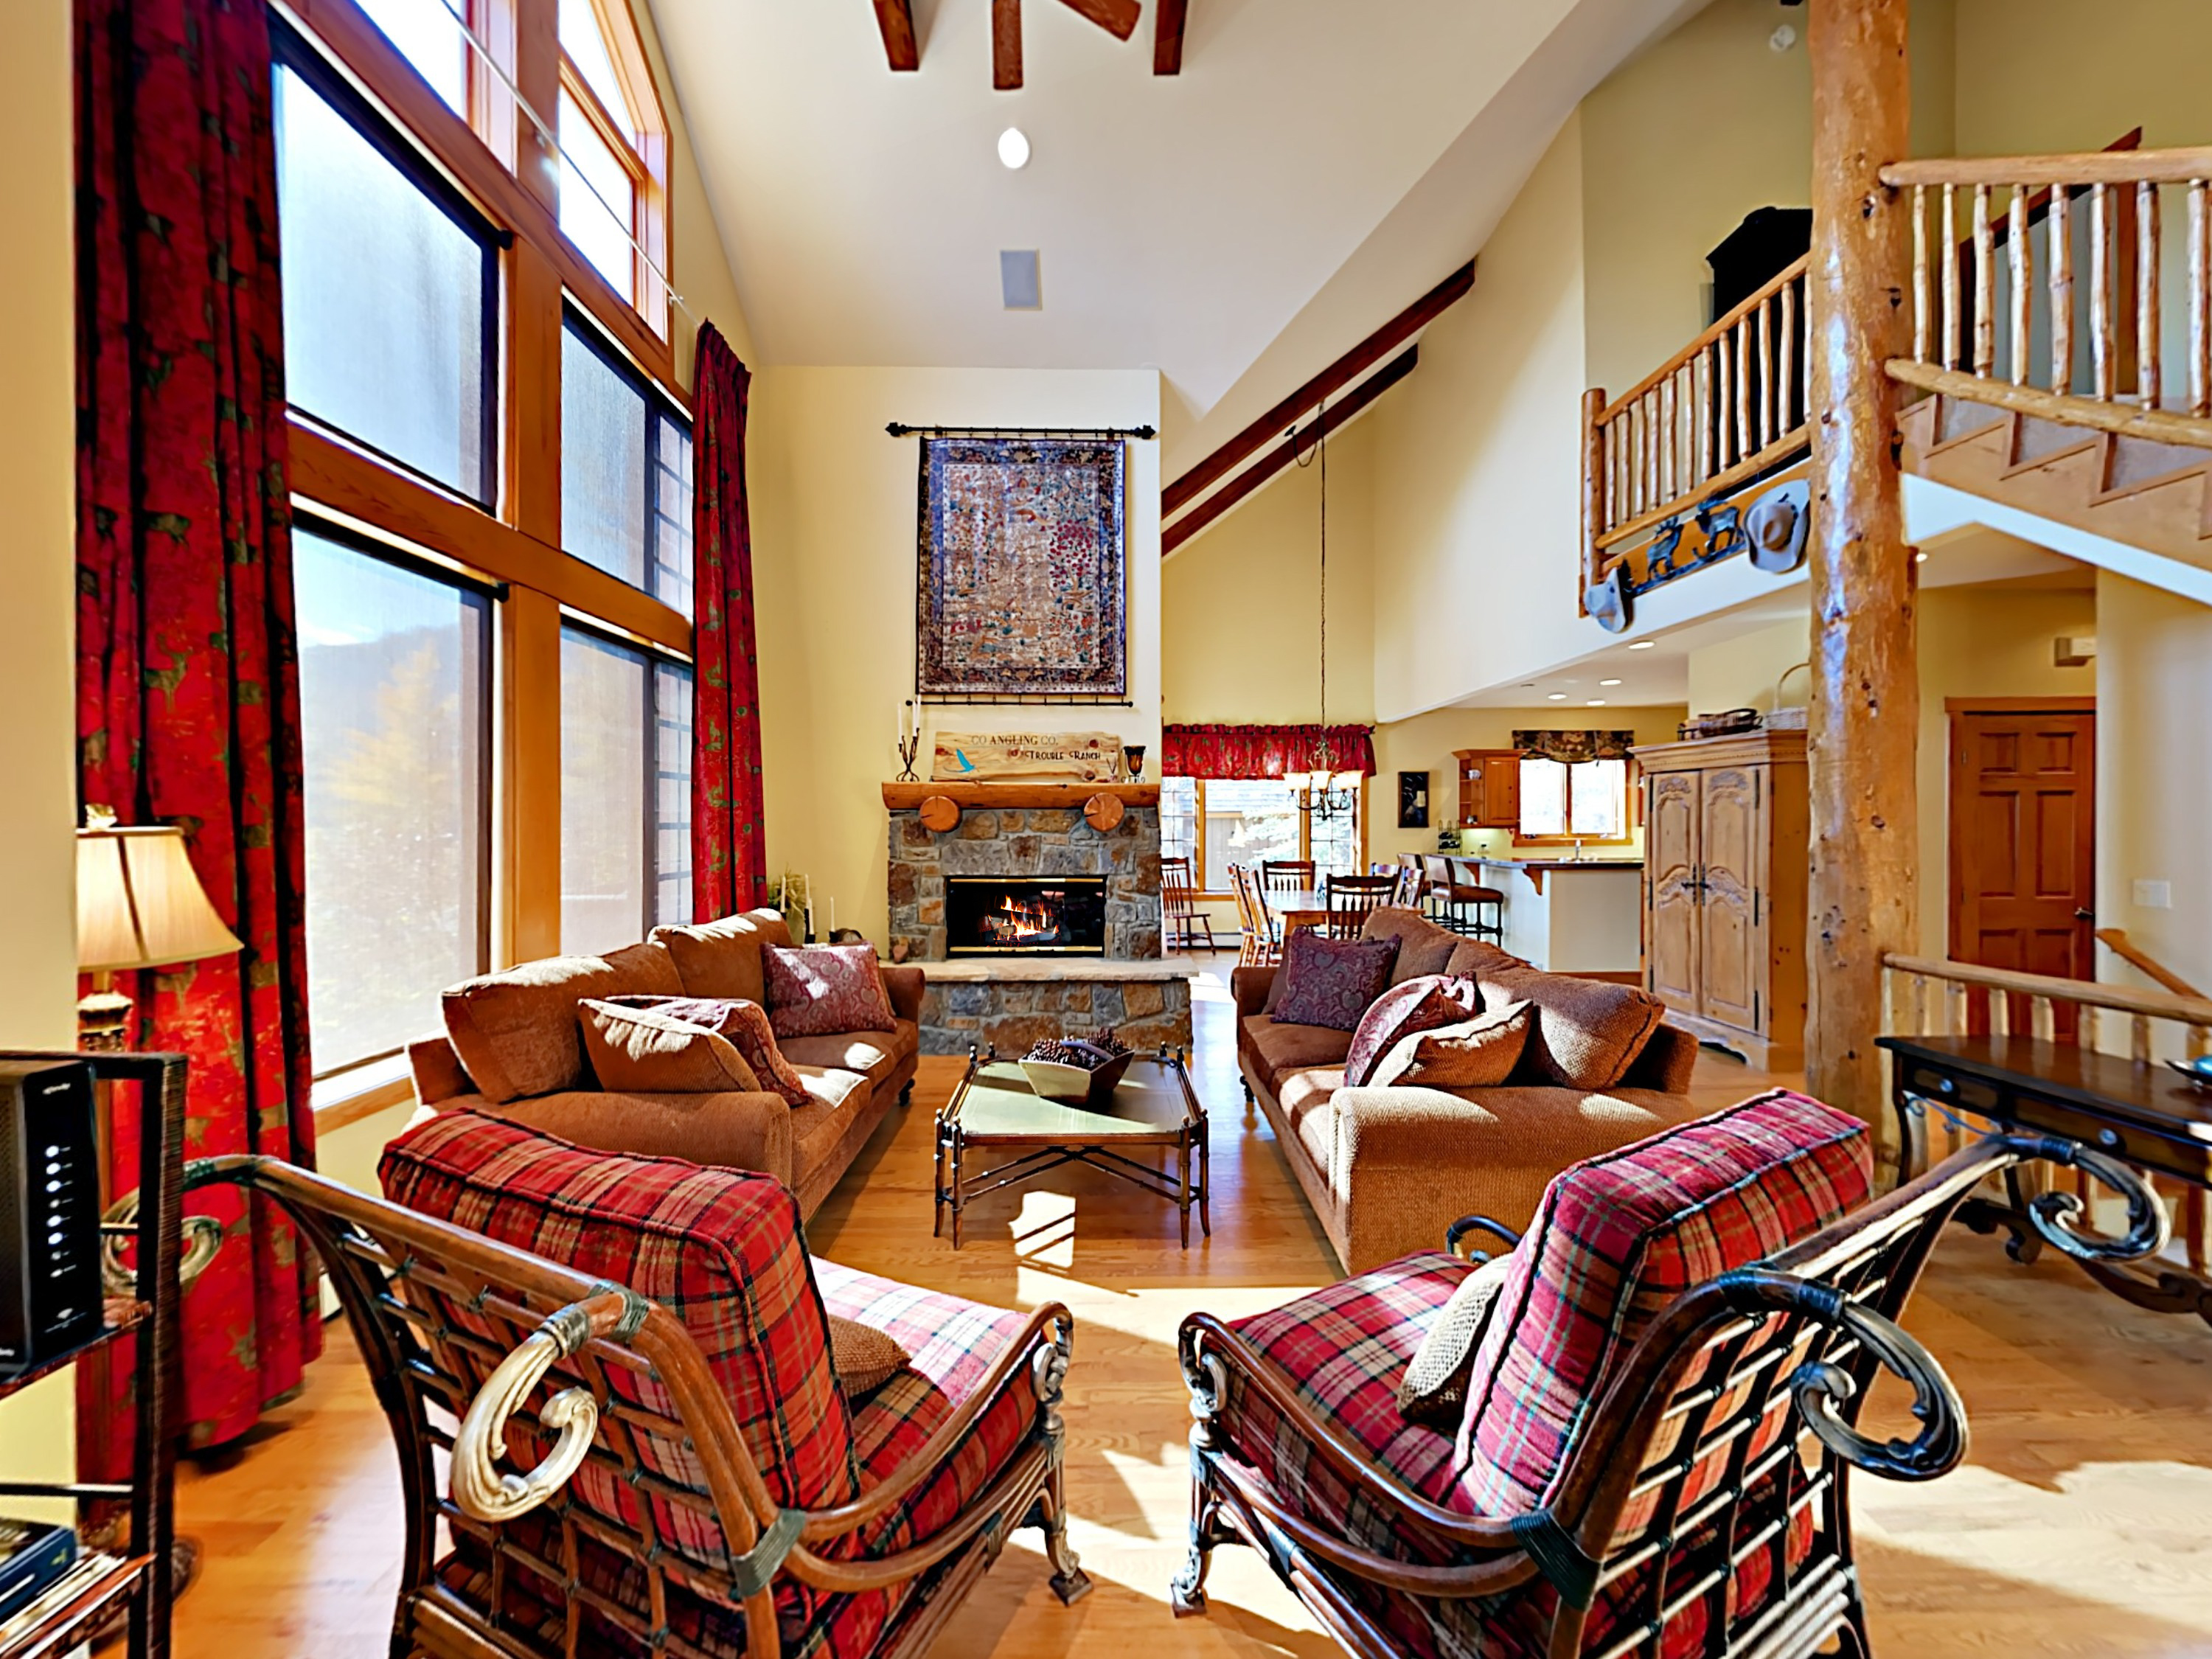 Edwards CO Vacation Rental Welcome! This stunning